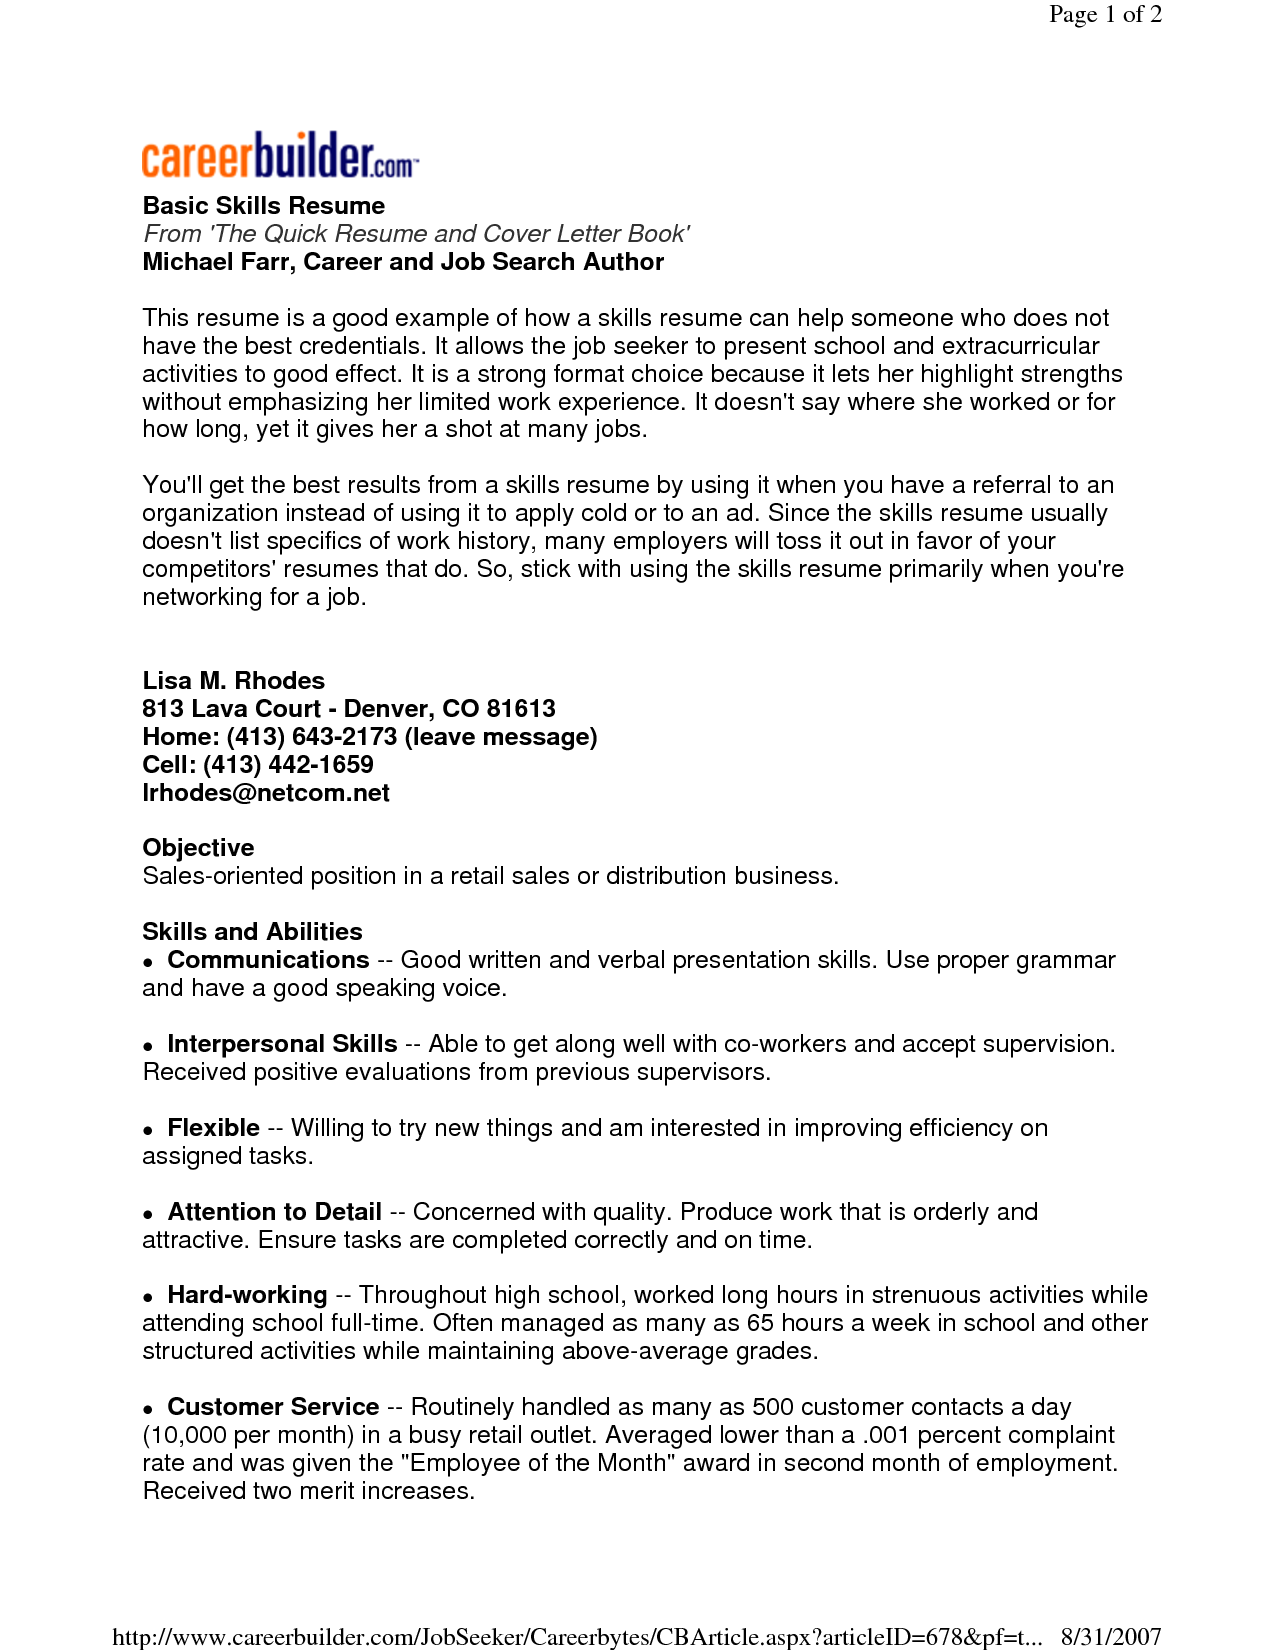 skills for resume sample the brilliant transferable skills list for resumes resume format web best transferable